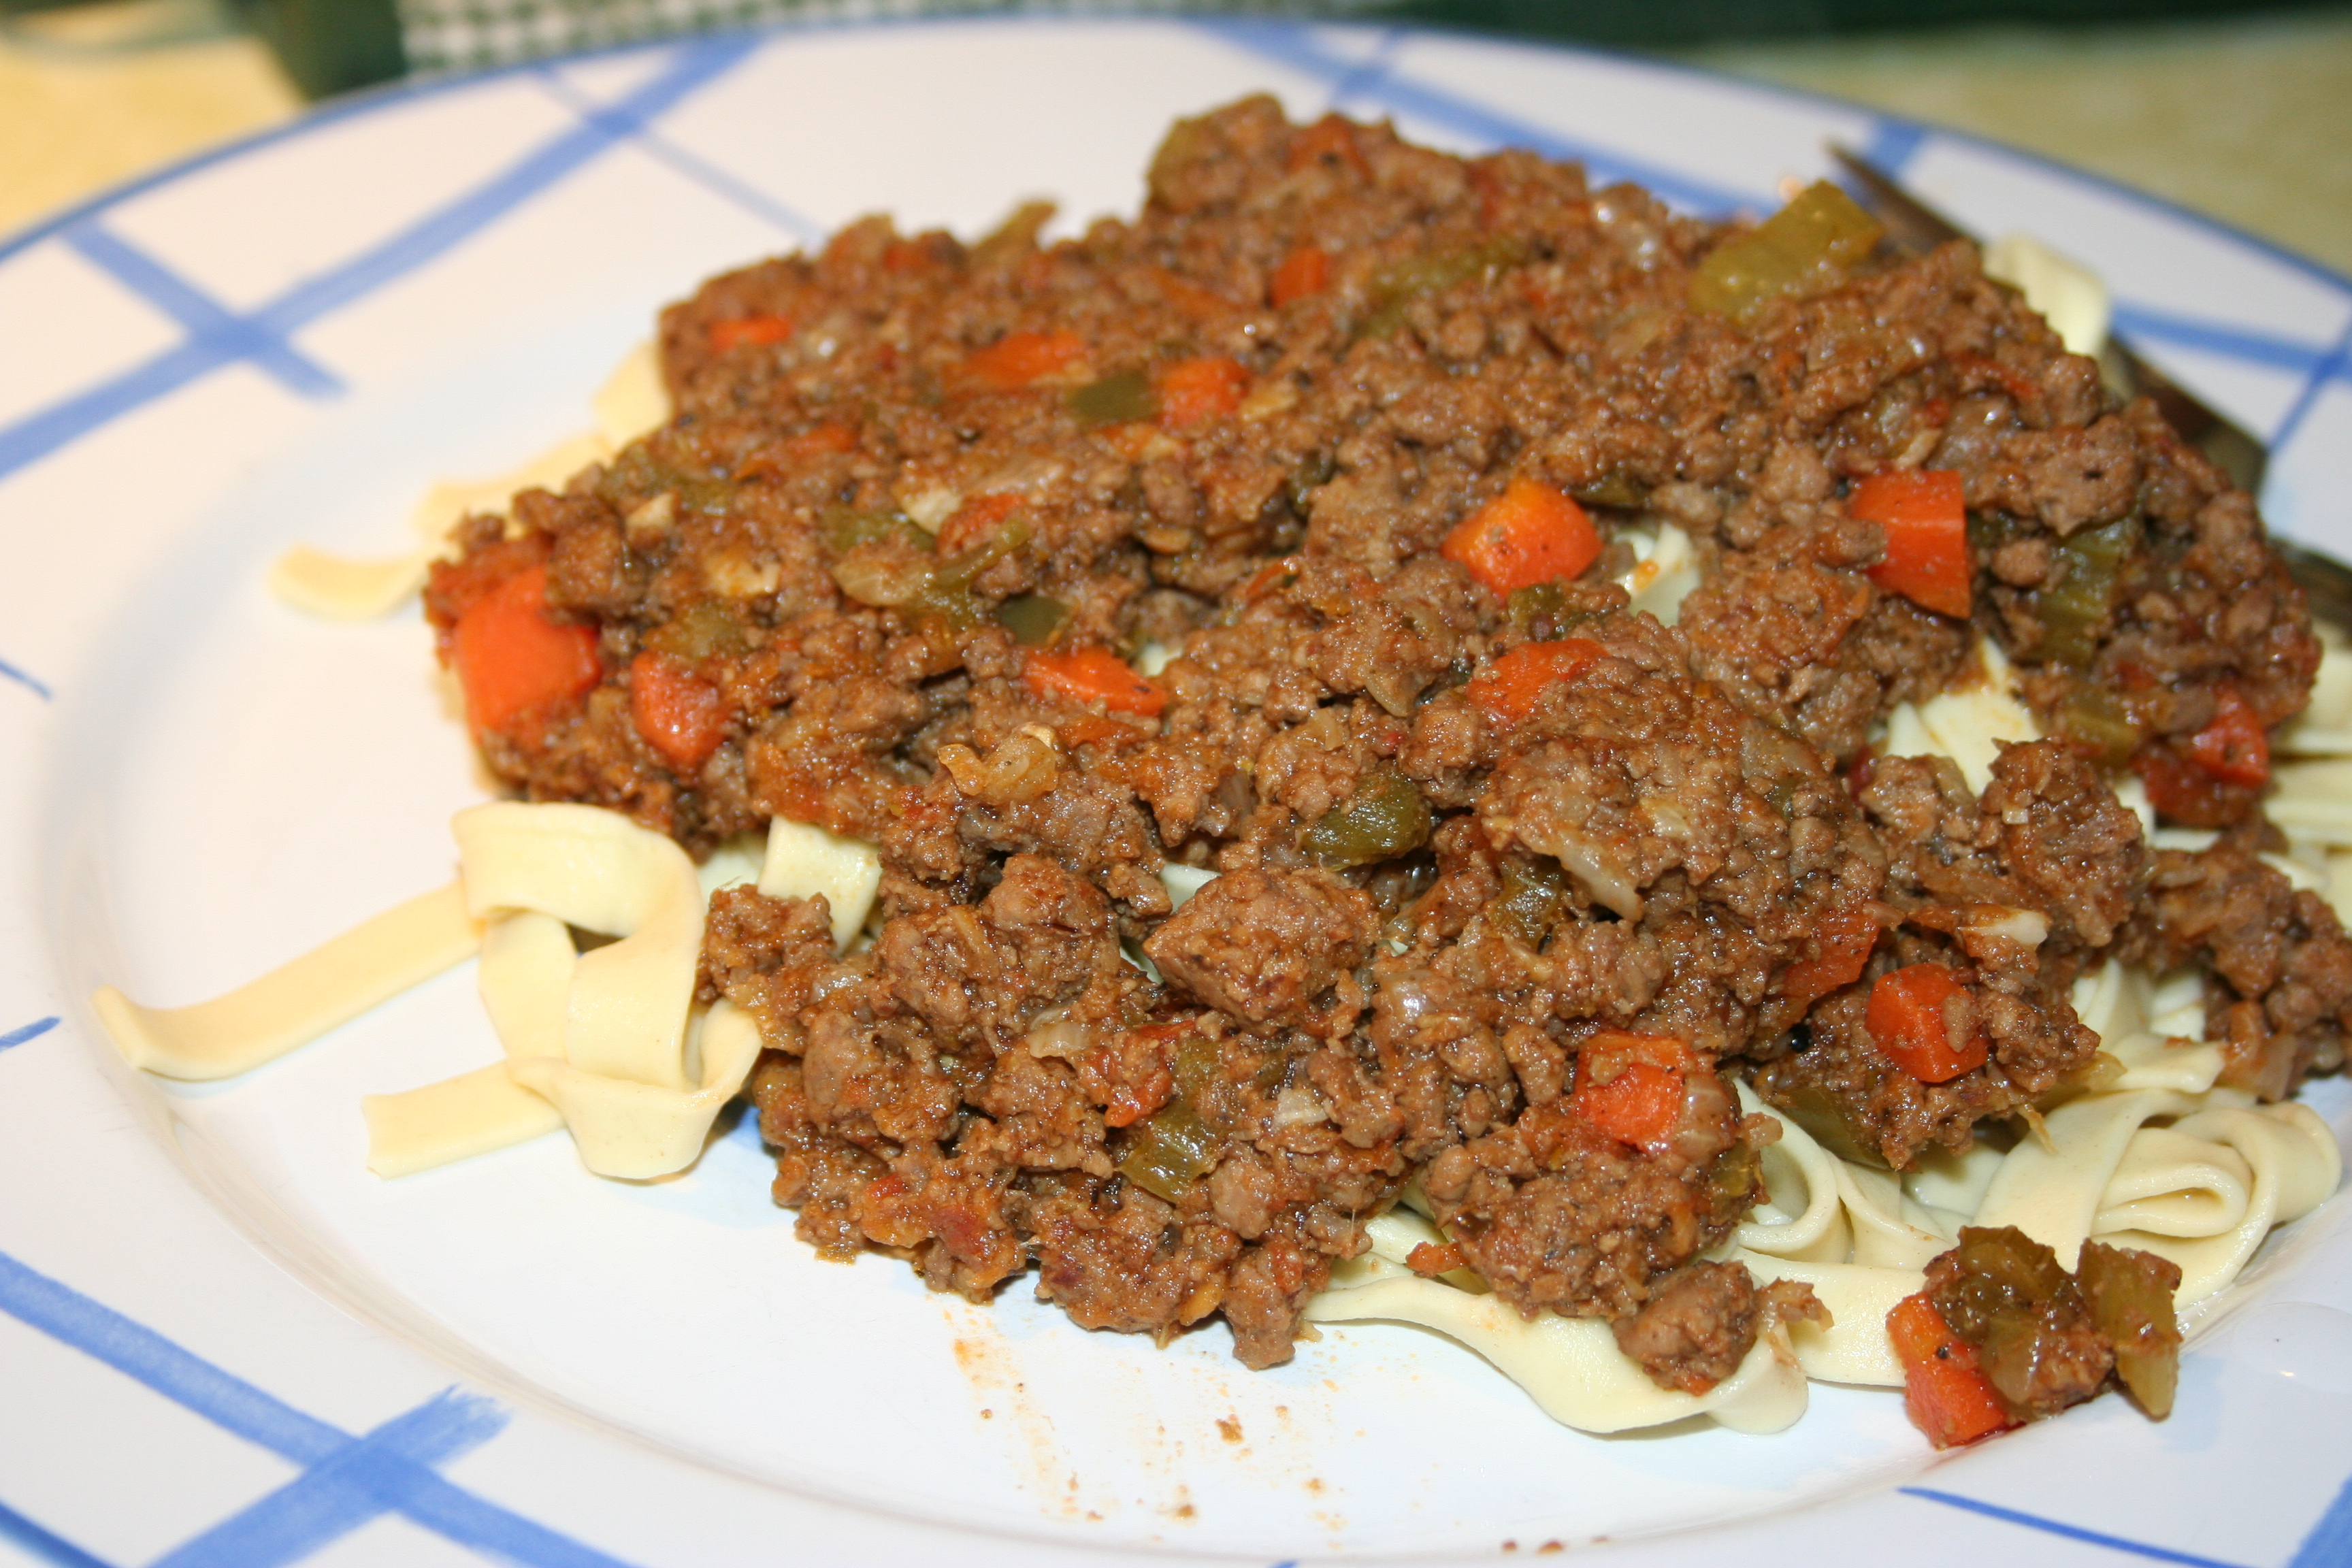 Tomato and beef sauce completely from scratch